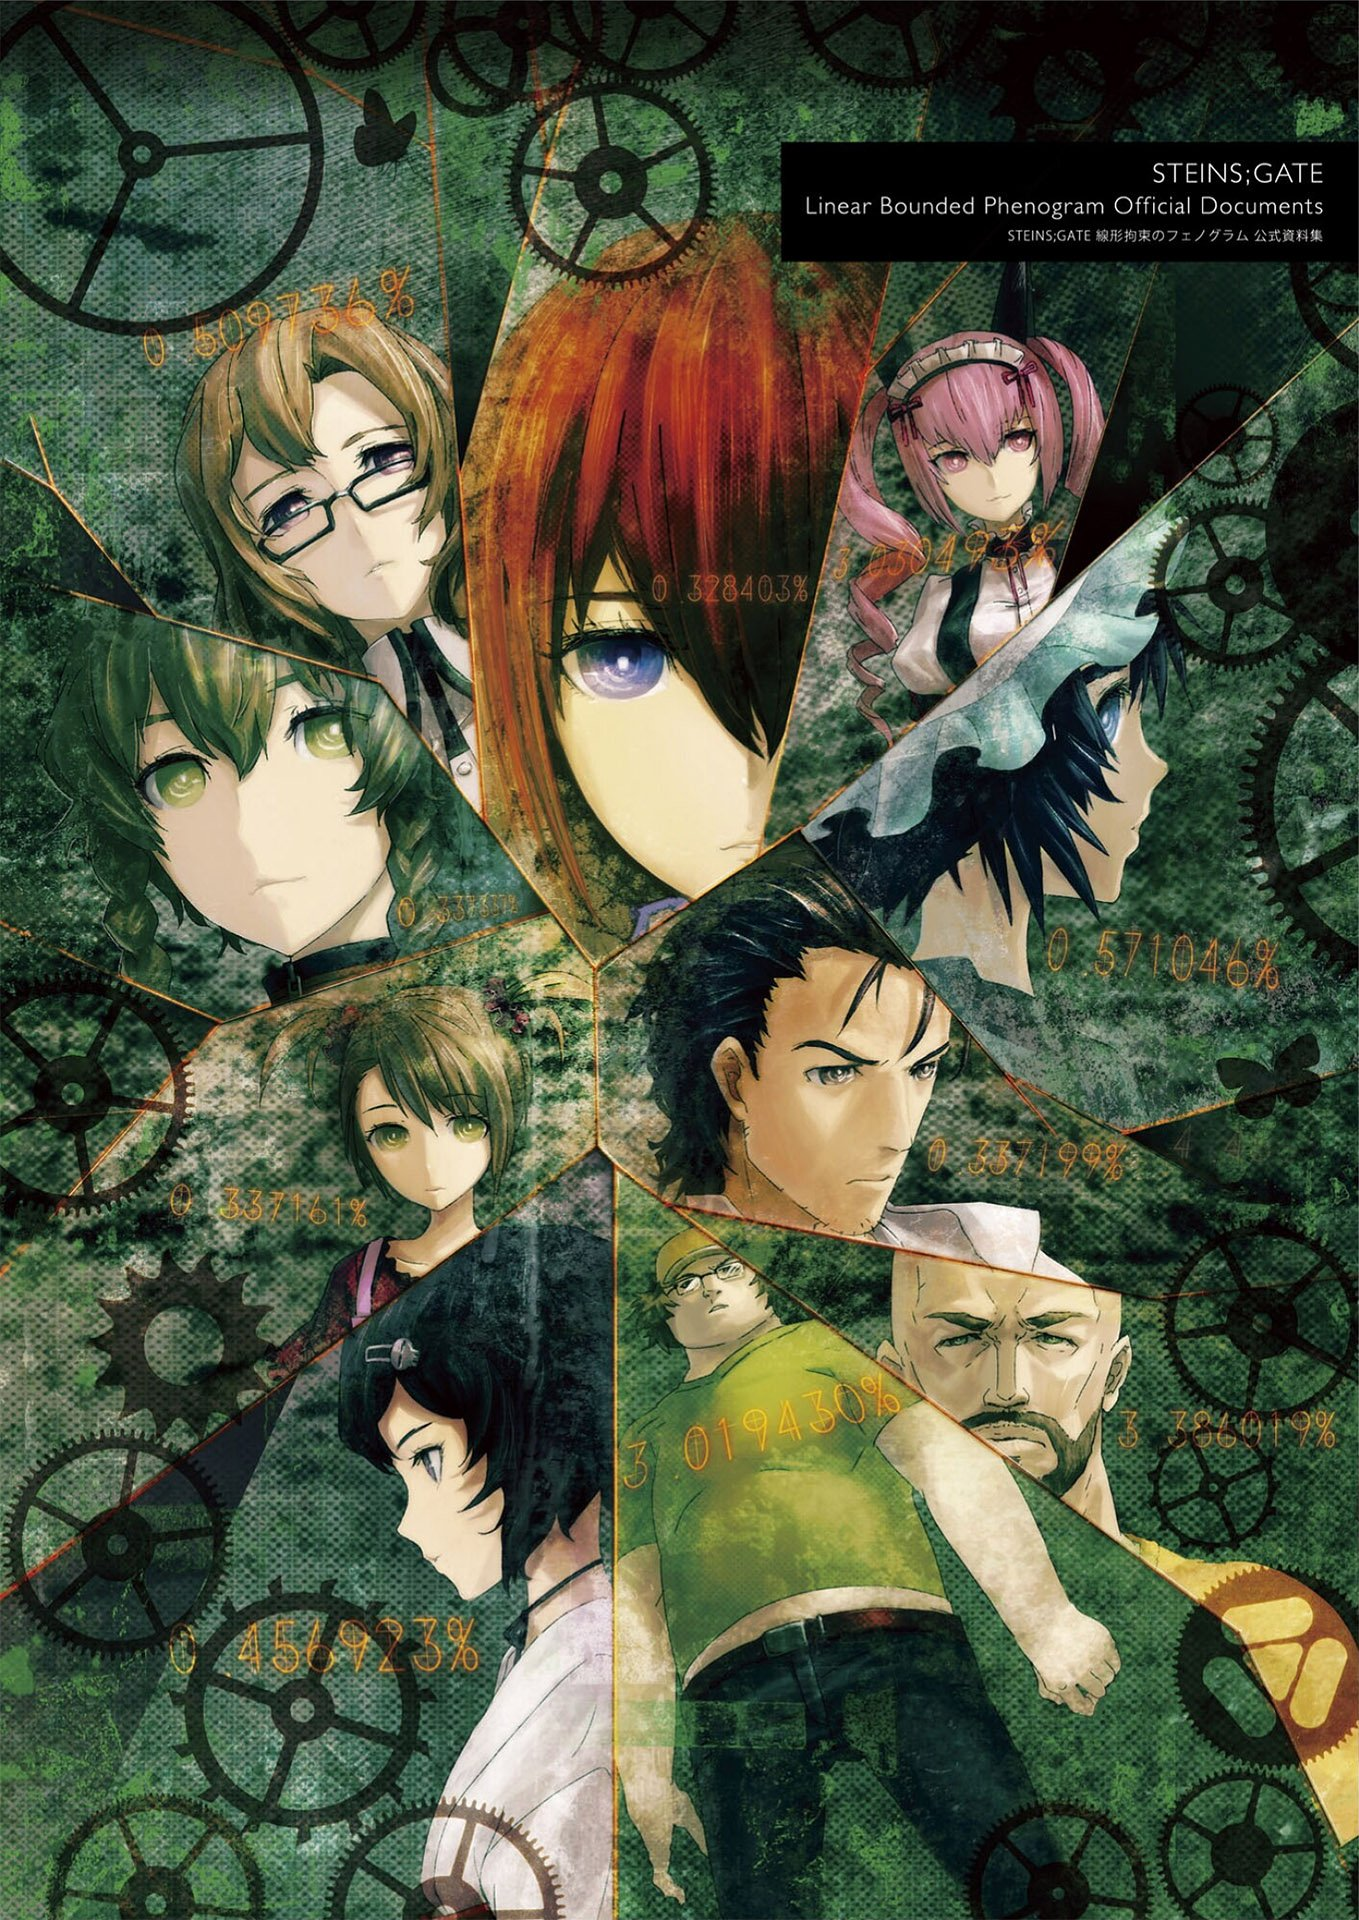 Steins;Gate - Linear Bounded Phenogram Official Documentsjpg